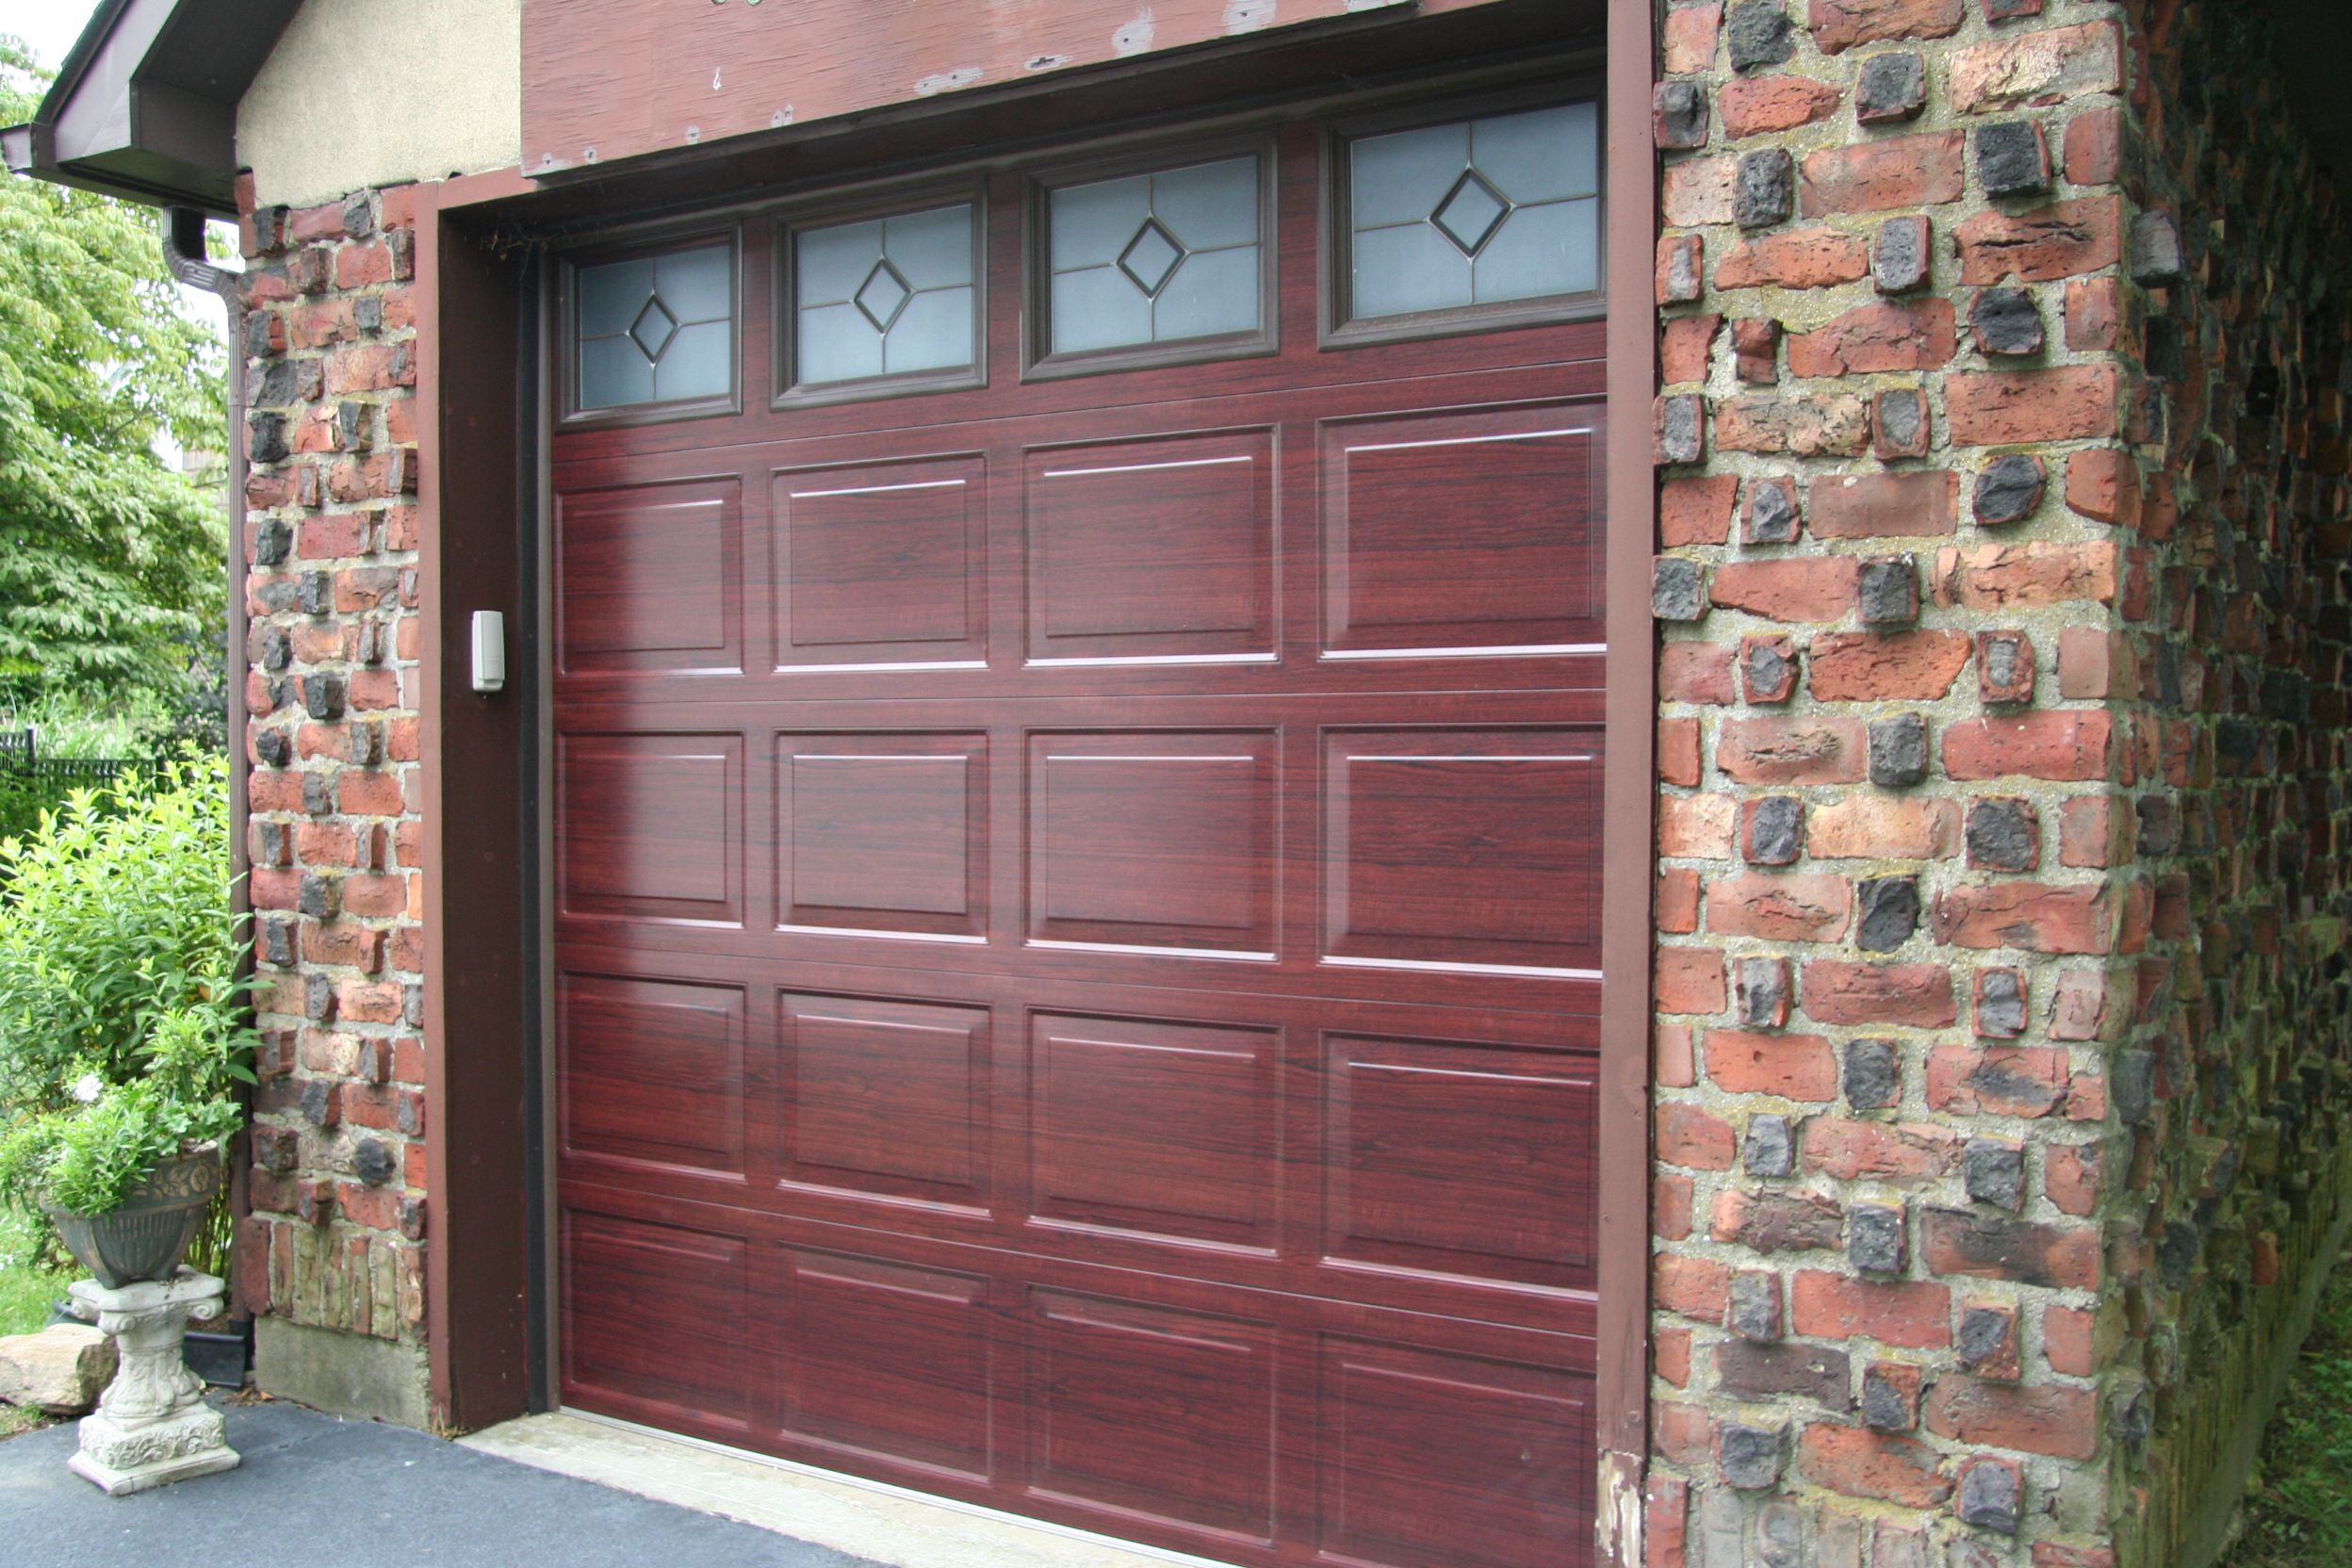 working raynor size opener full of doors decor remote battery style replacement door carriage not designs d genie light garage surprising